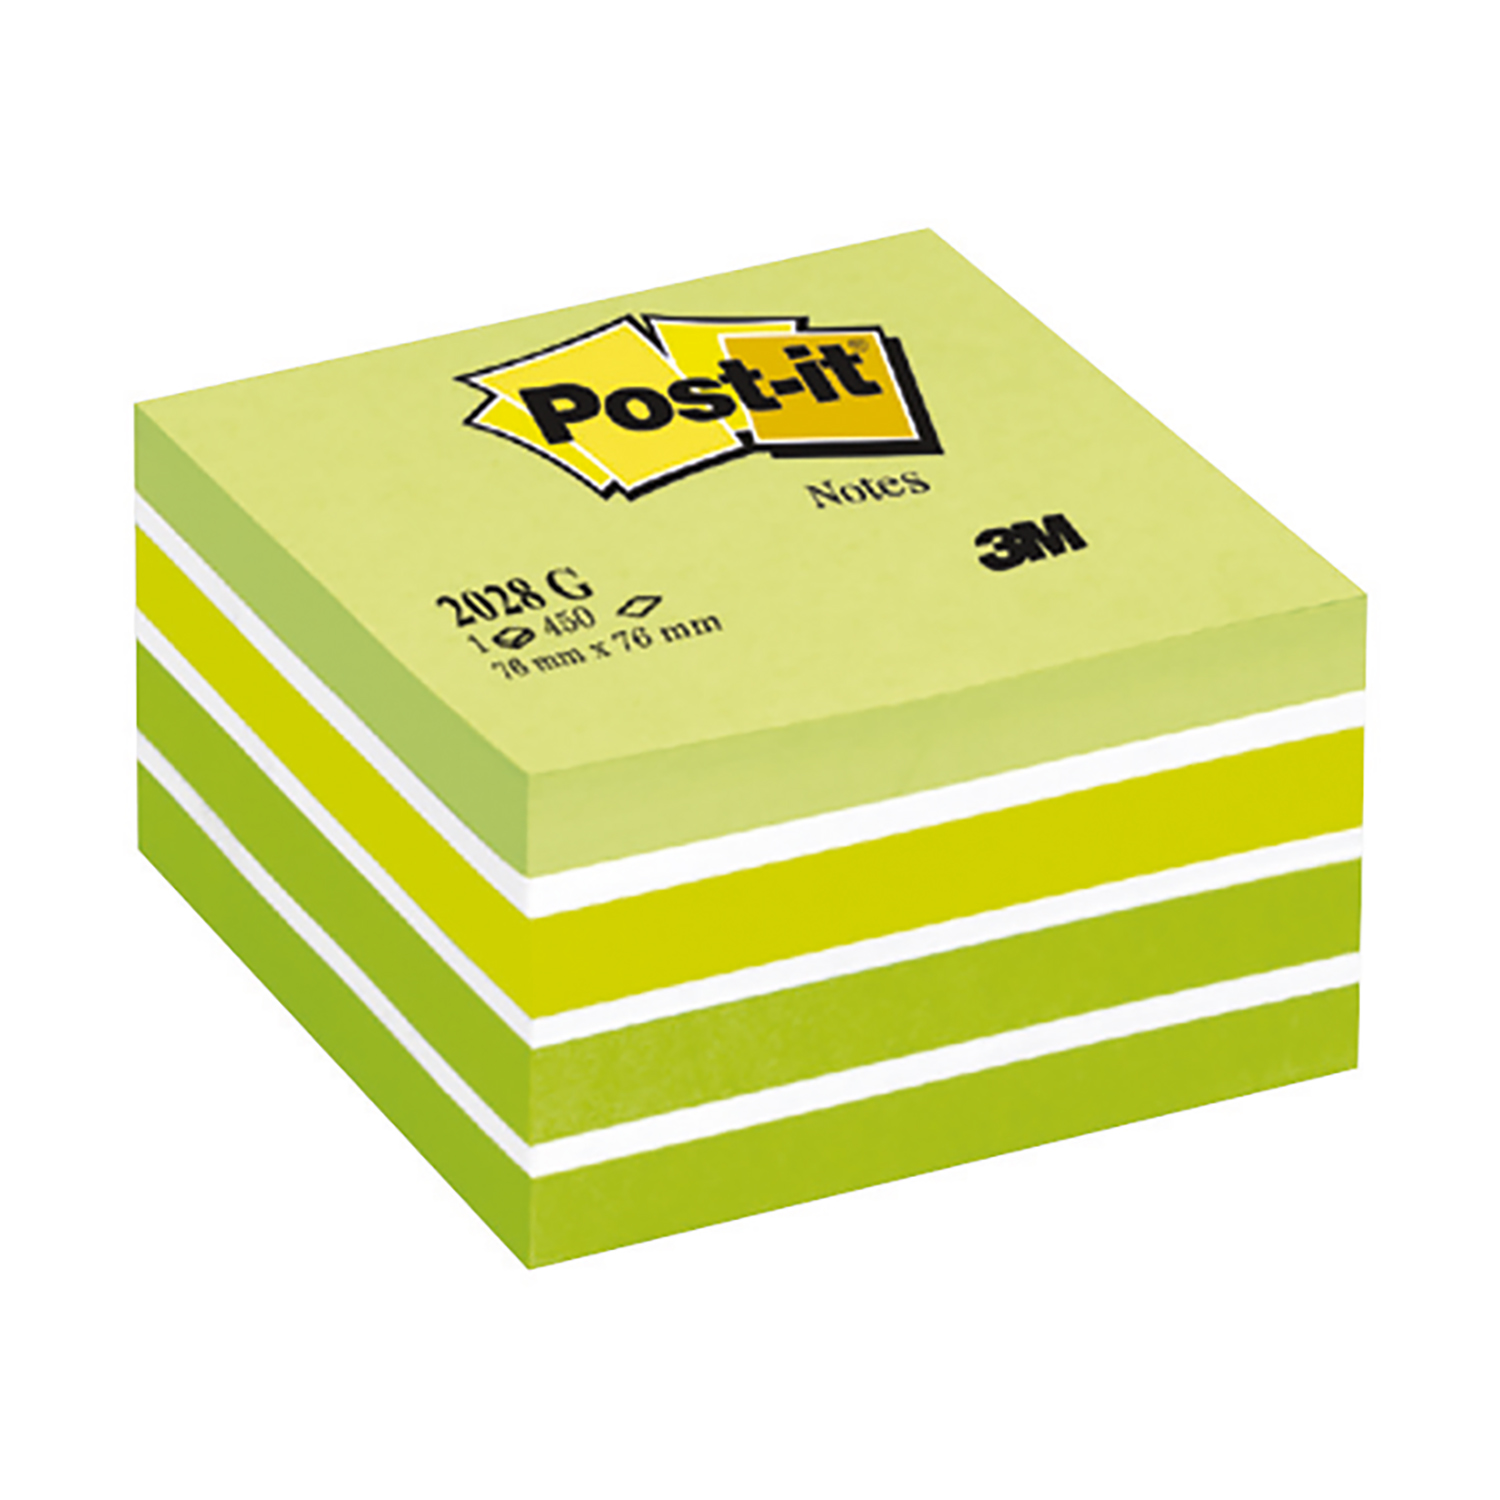 Self adhesive note paper Post-it Note Cube Pad of 450 Sheets 76x76mm Pastel Green Ref 2028G